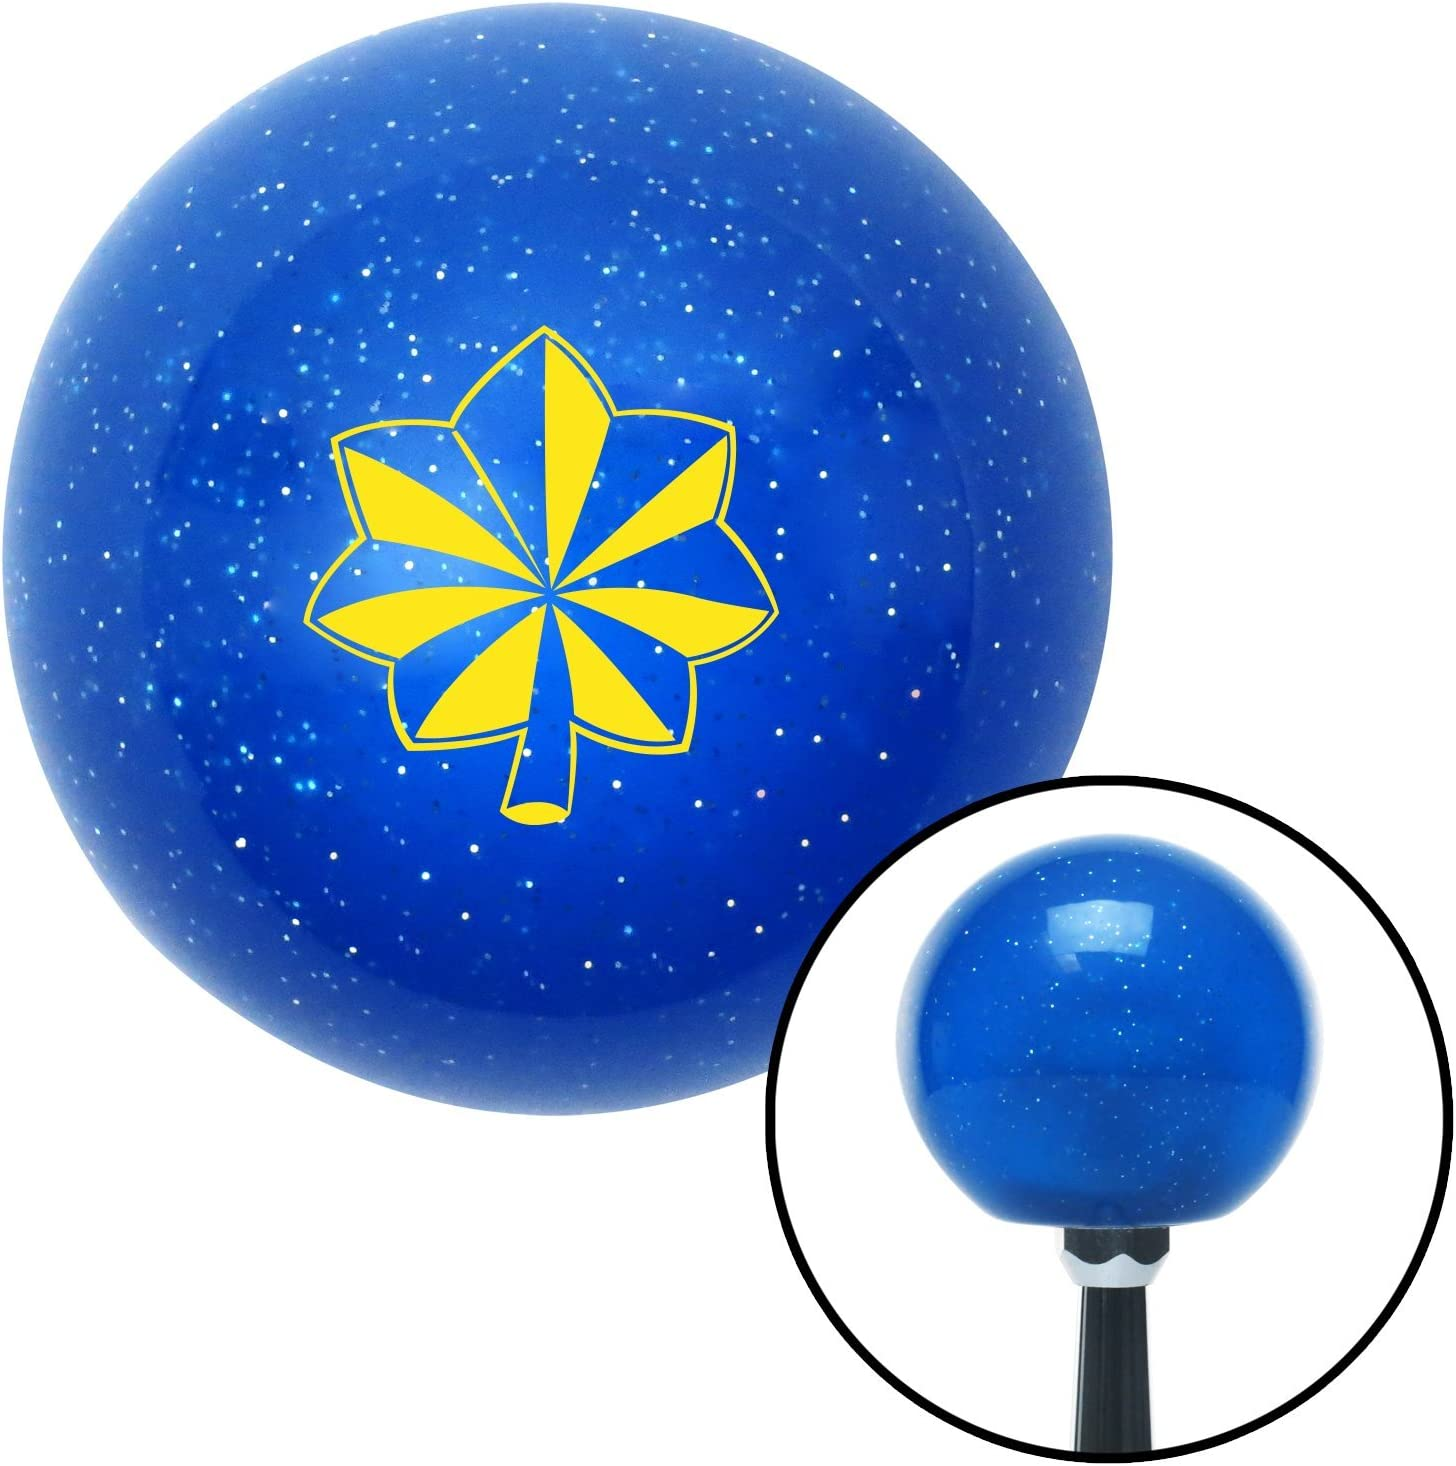 American Shifter 26007 Blue Metal Flake Shift Knob Yellow Officer 04 and 05